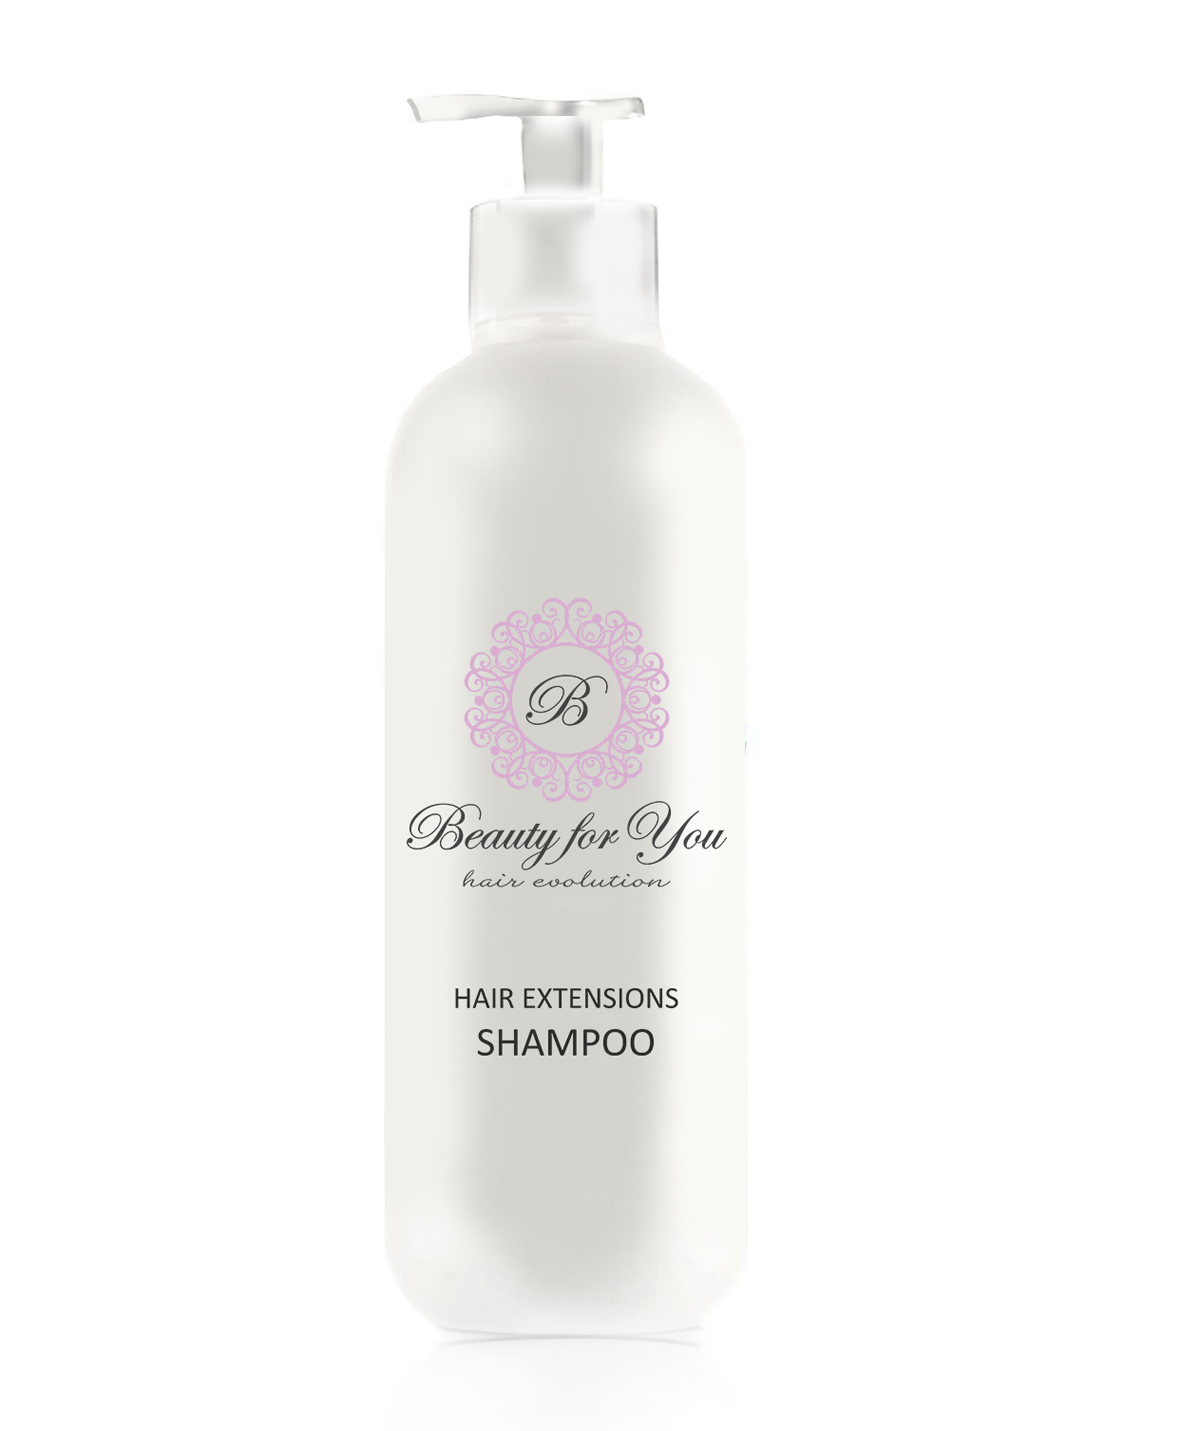 Beauty for You Hair Extension Technical Shampoo - technický šampon na prodlužováné vlasy, 500 ml